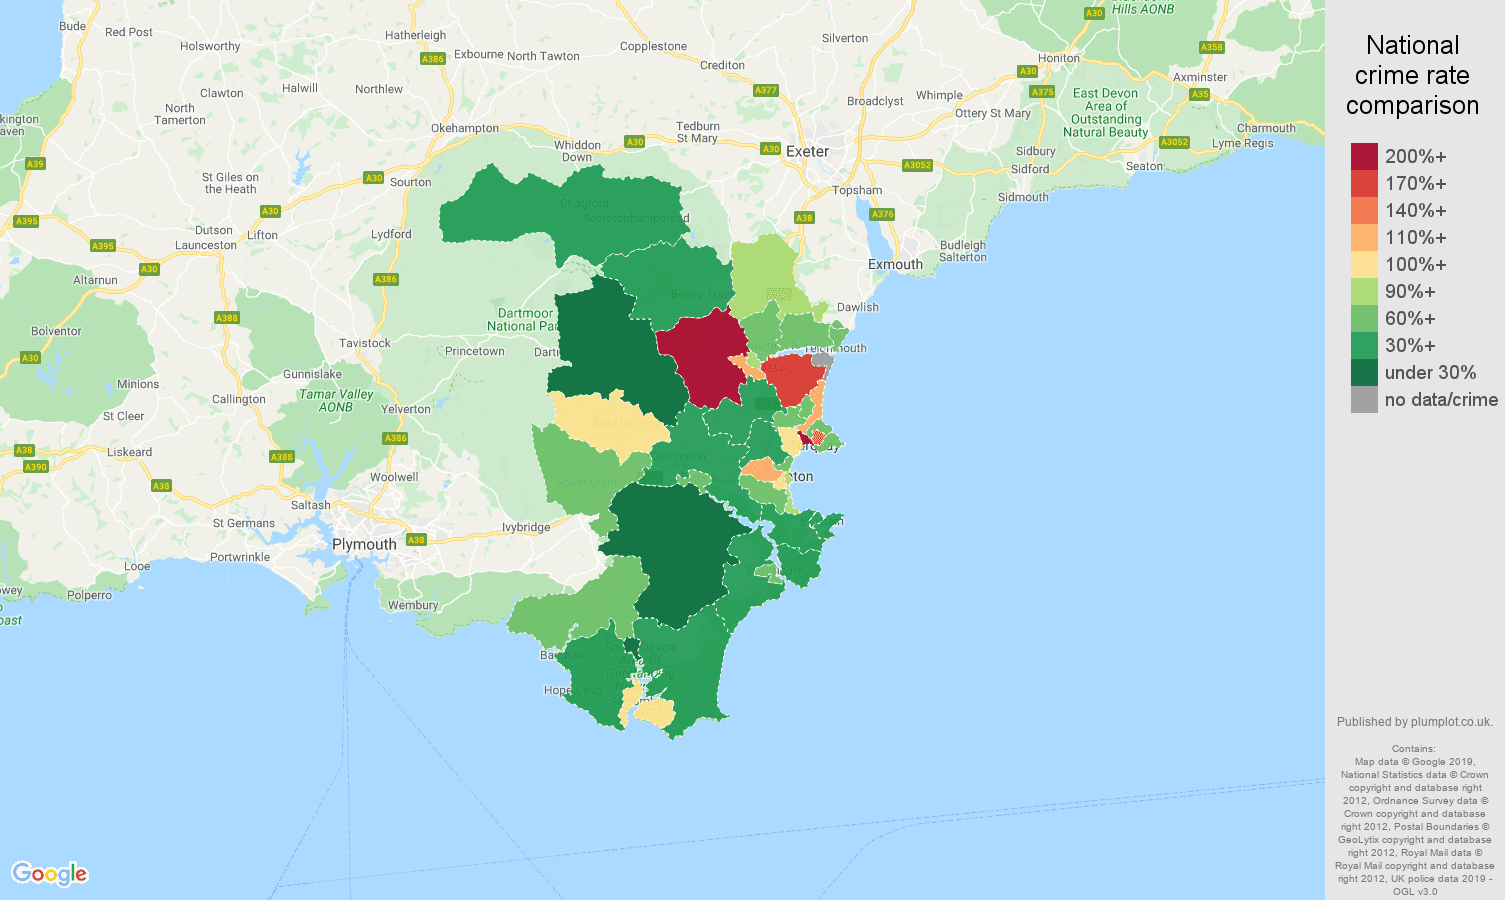 Torquay other crime rate comparison map